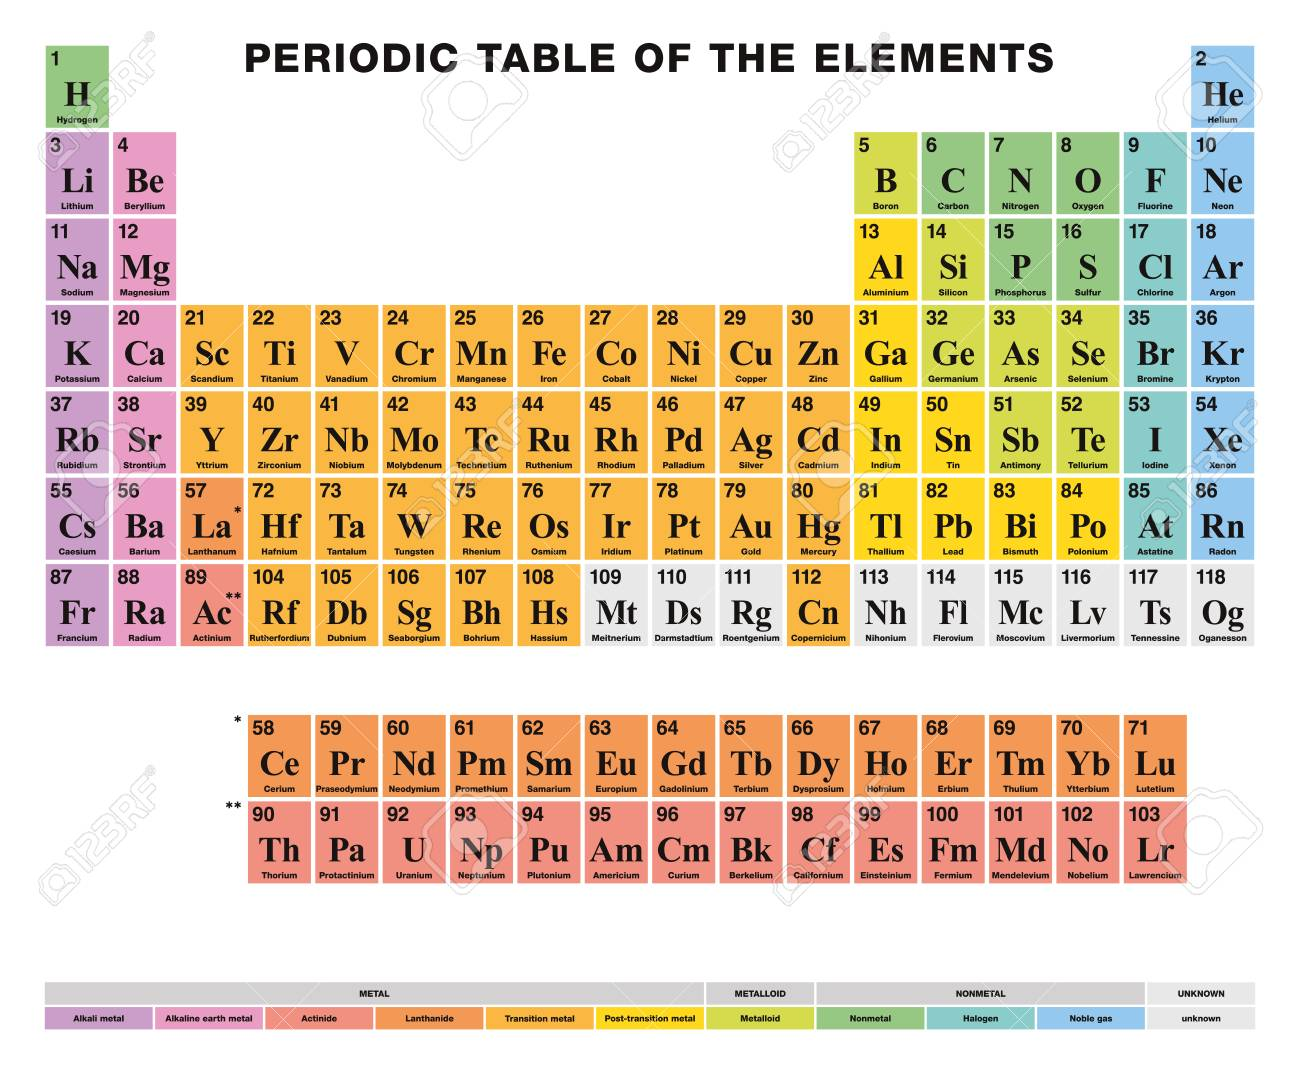 Periodic table of the elements english labeling tabular periodic table of the elements english labeling tabular arrangement of 118 chemical elements urtaz Image collections